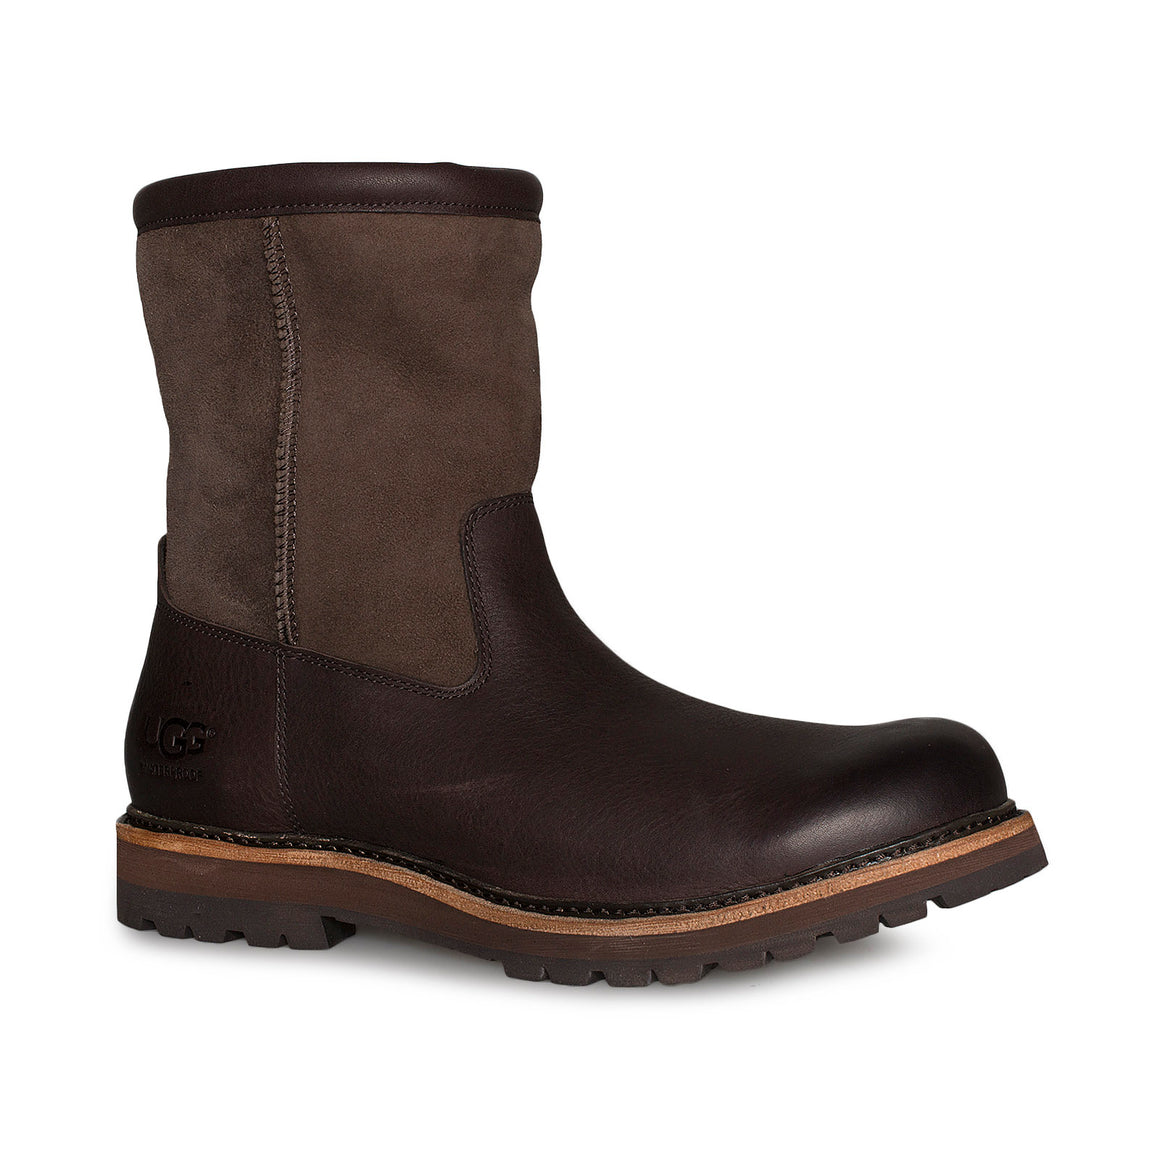 UGG Polson Stout Boots - Men's